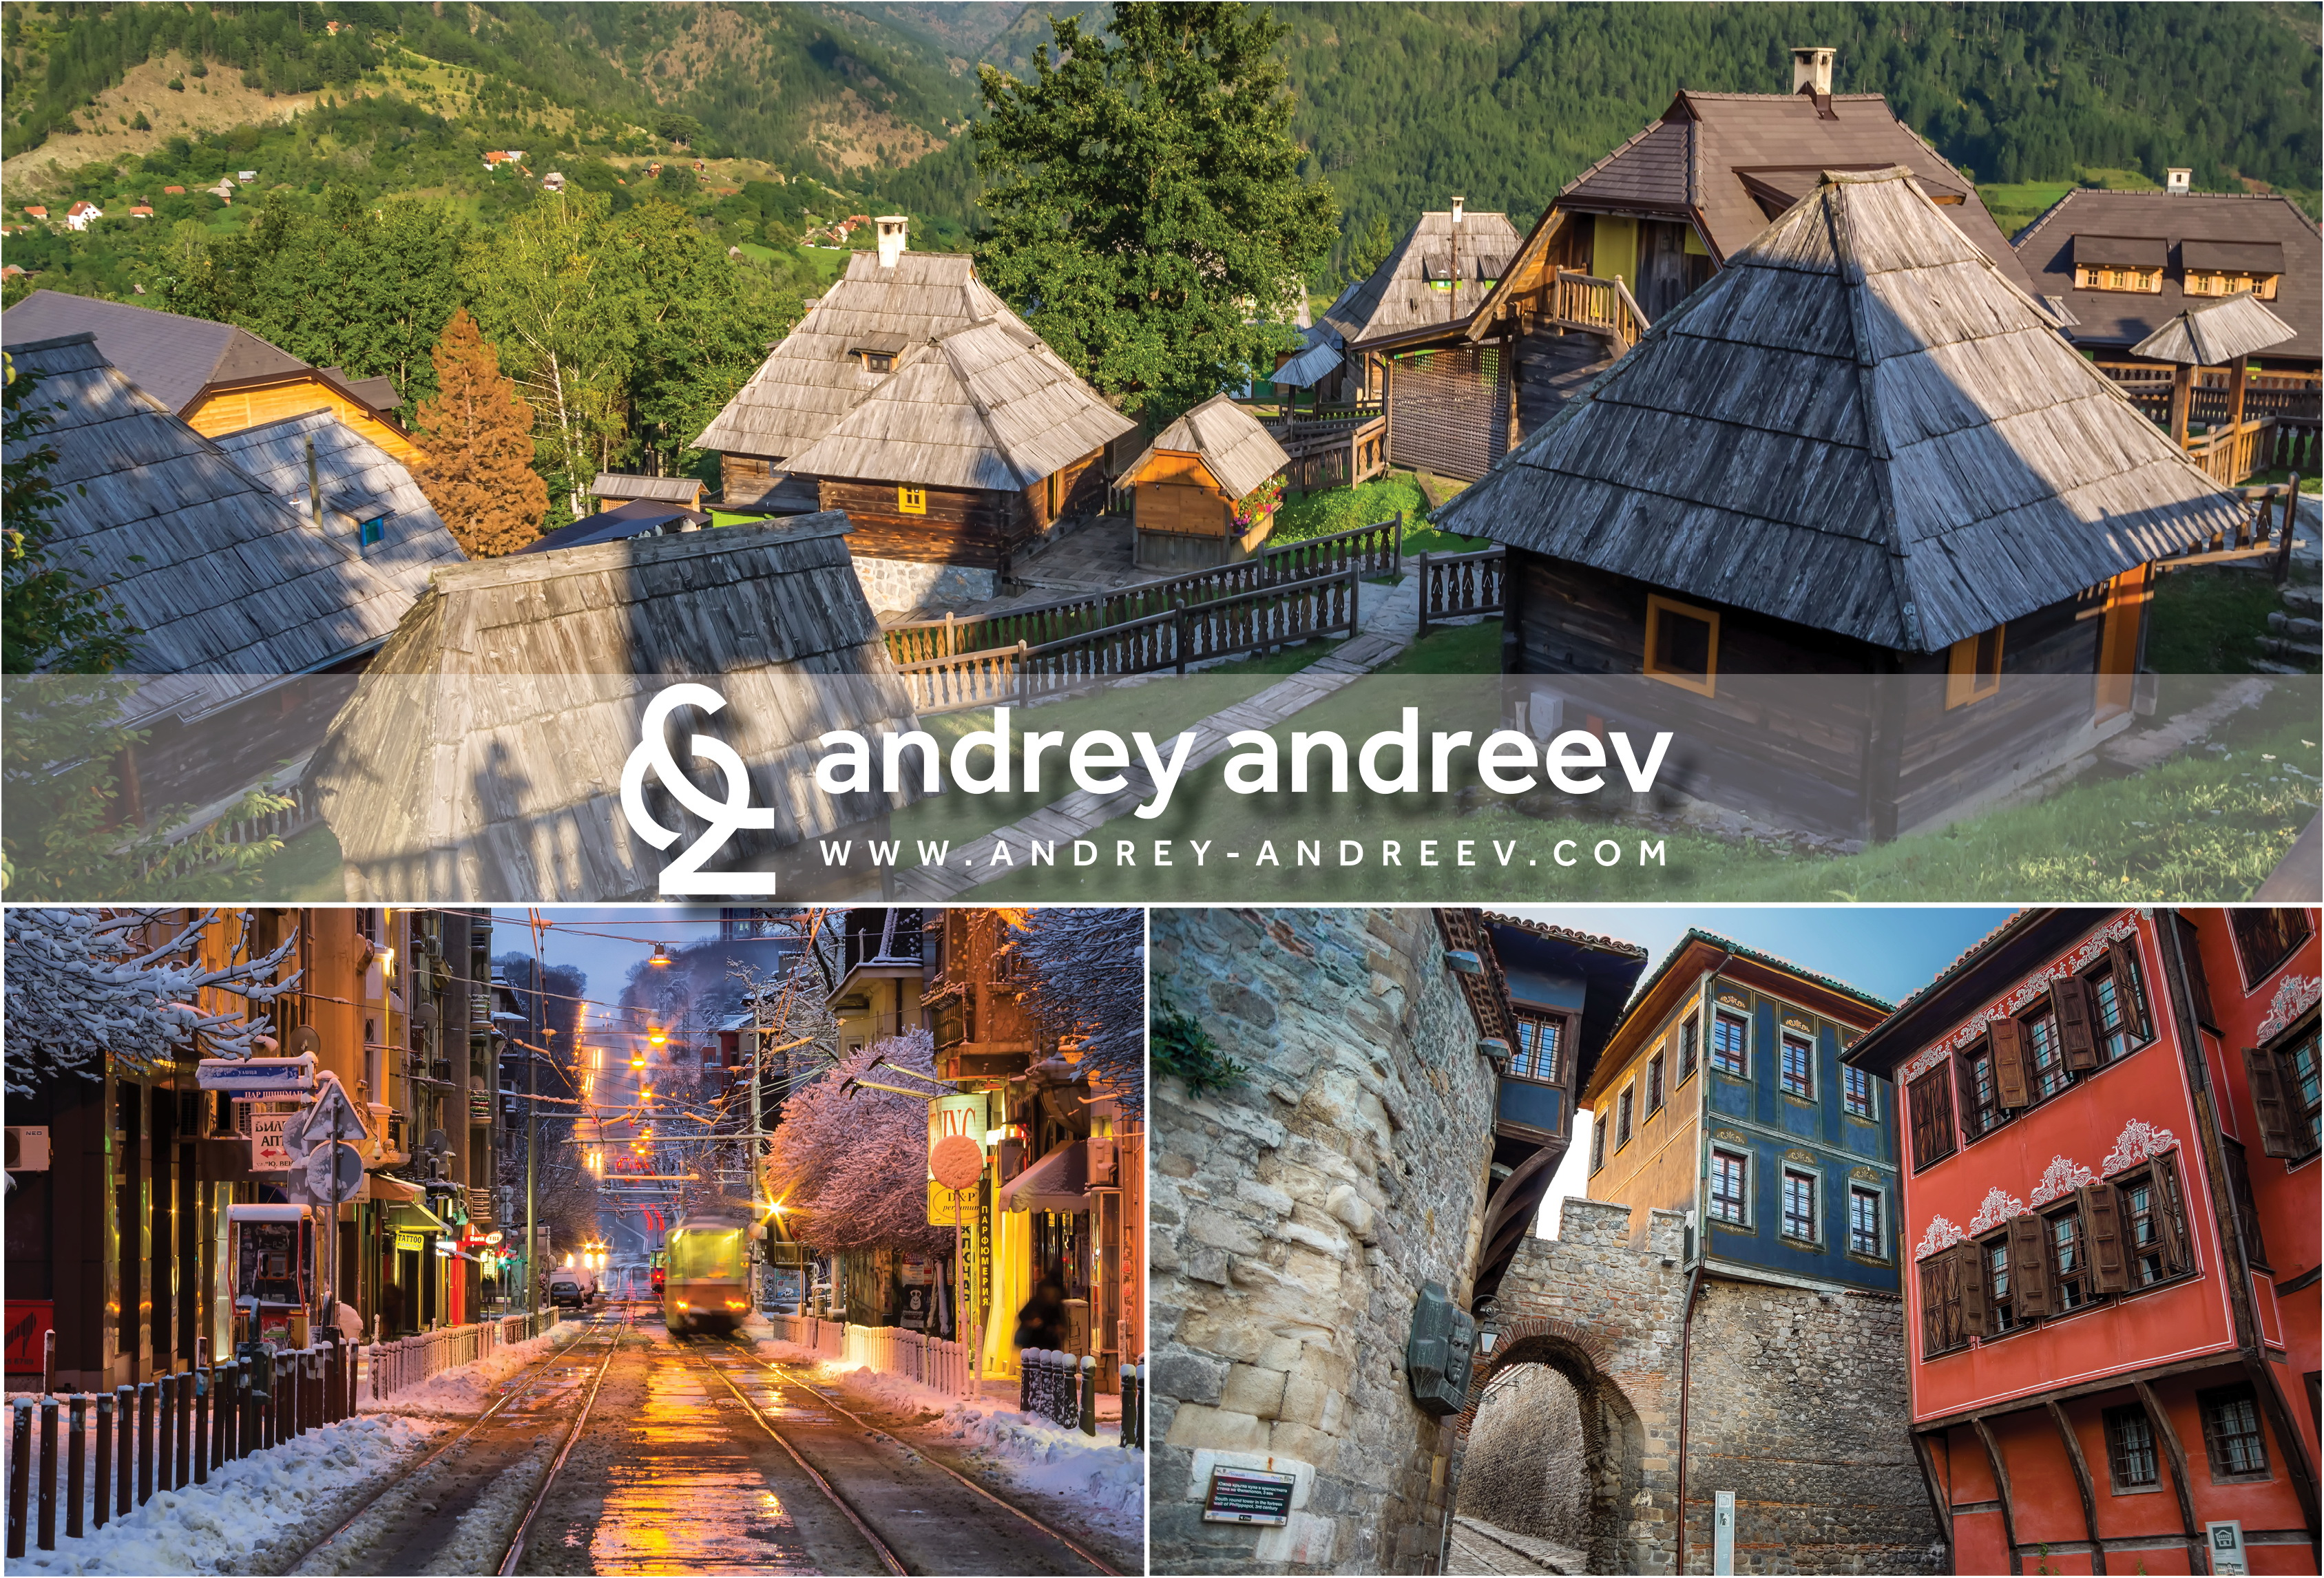 Andrey Andreev contacts